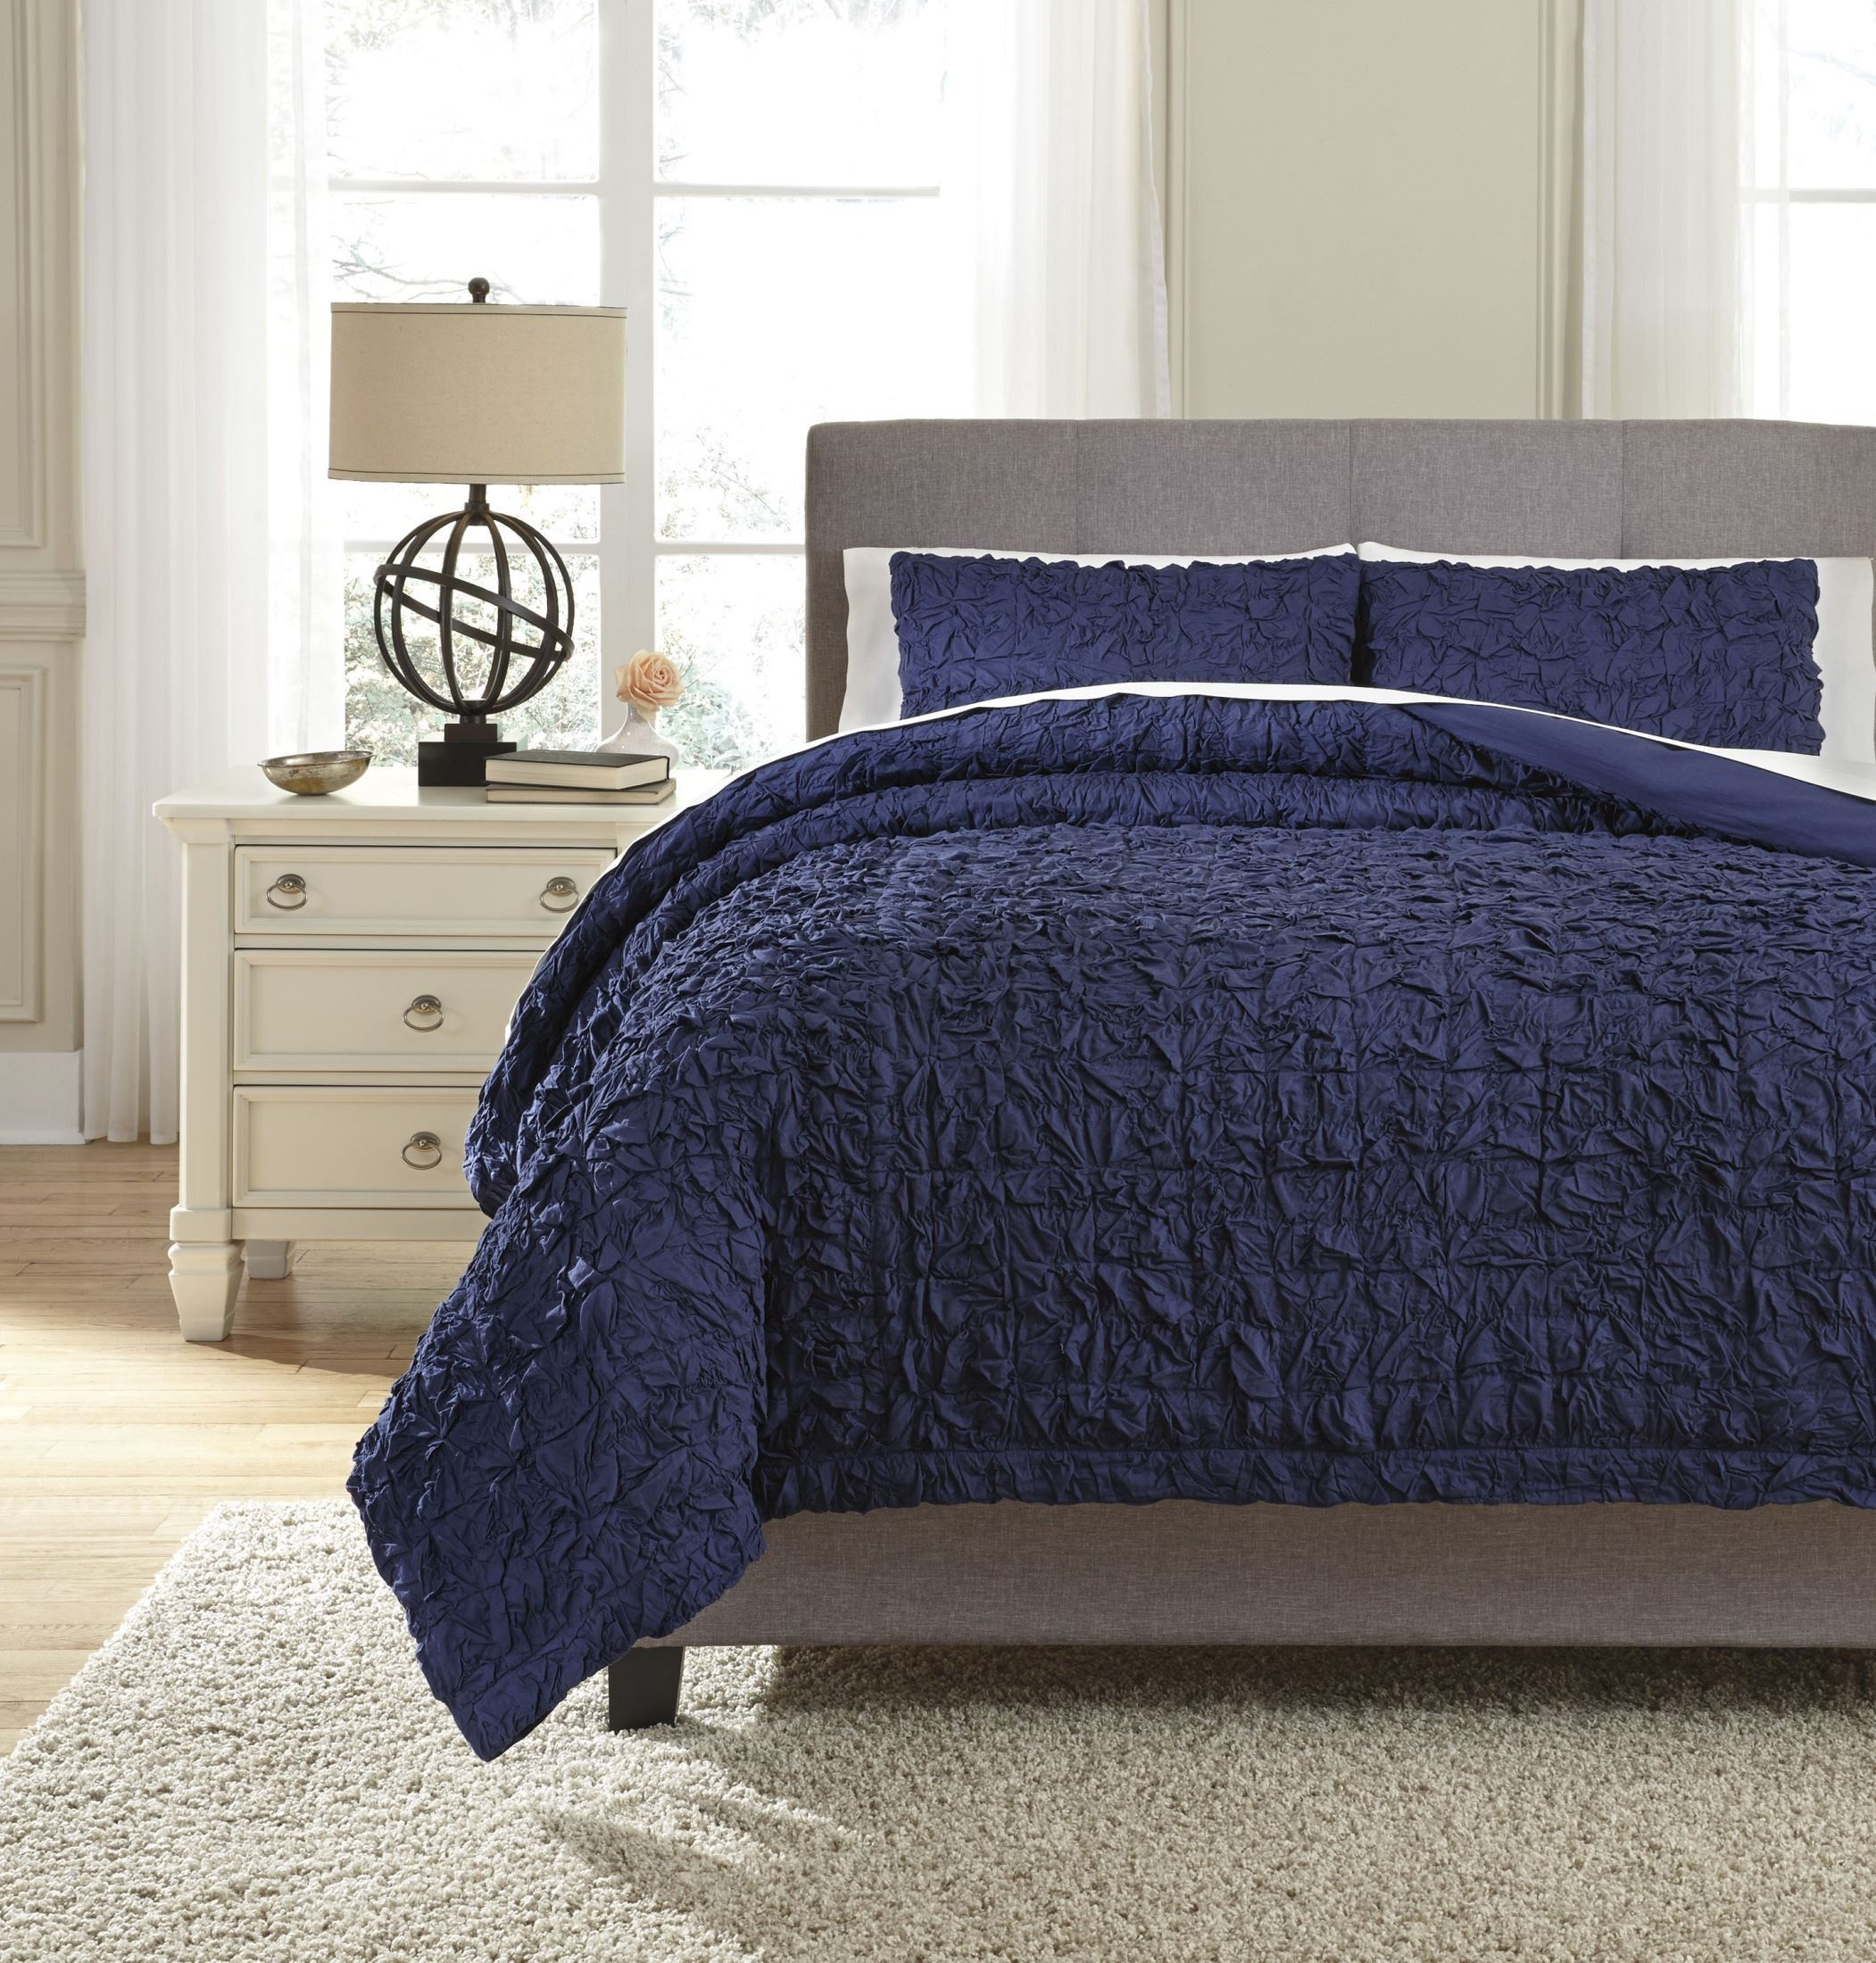 Marksville Indigo King Duvet Cover Set From Ashley